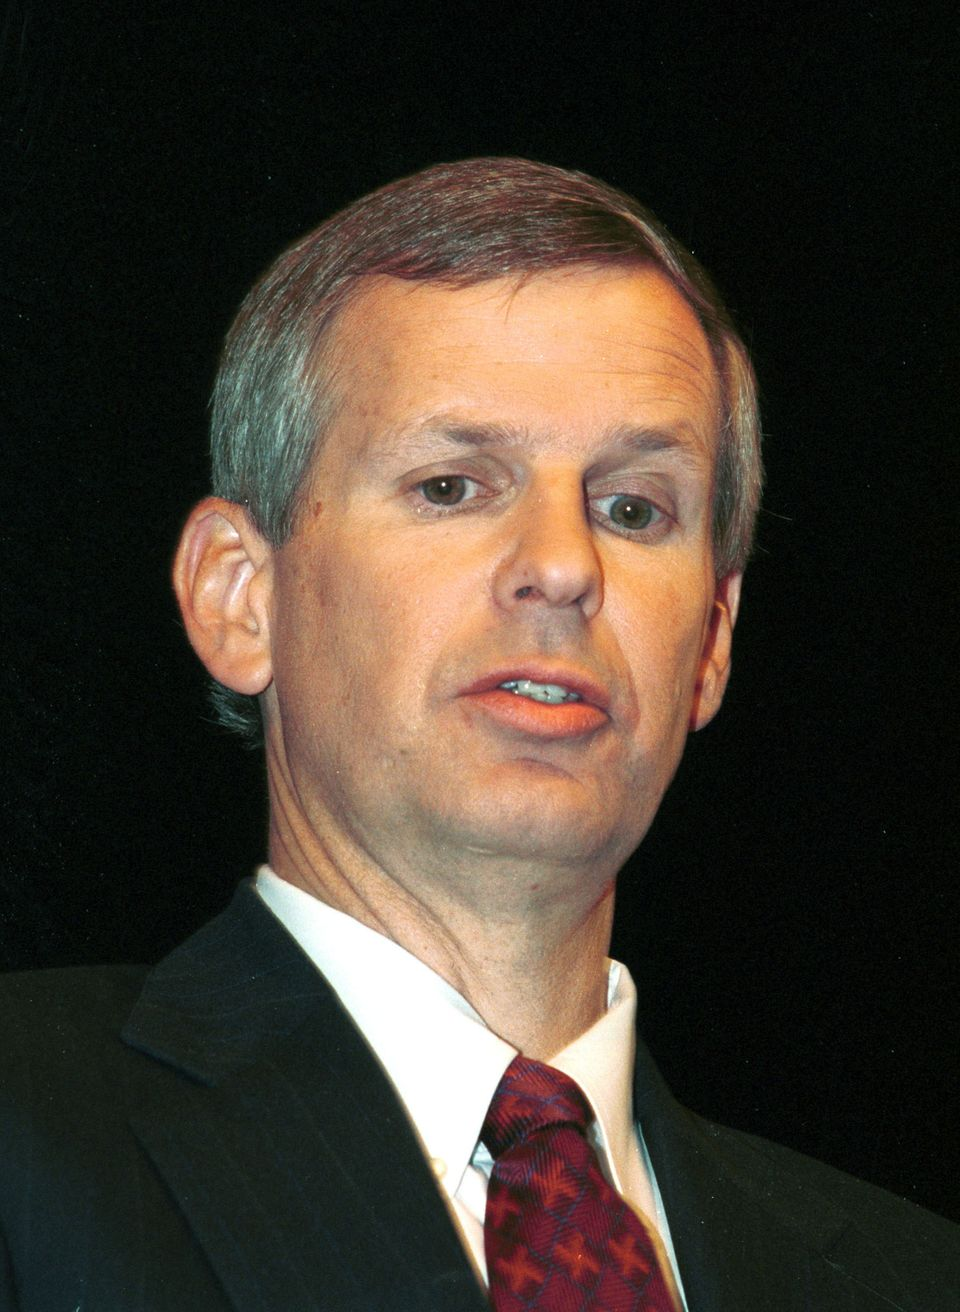 Listed as the richest Coloradan in Forbes magazine's annual billionaire issue, Charles Ergen is also No. 100 on the Forbes li